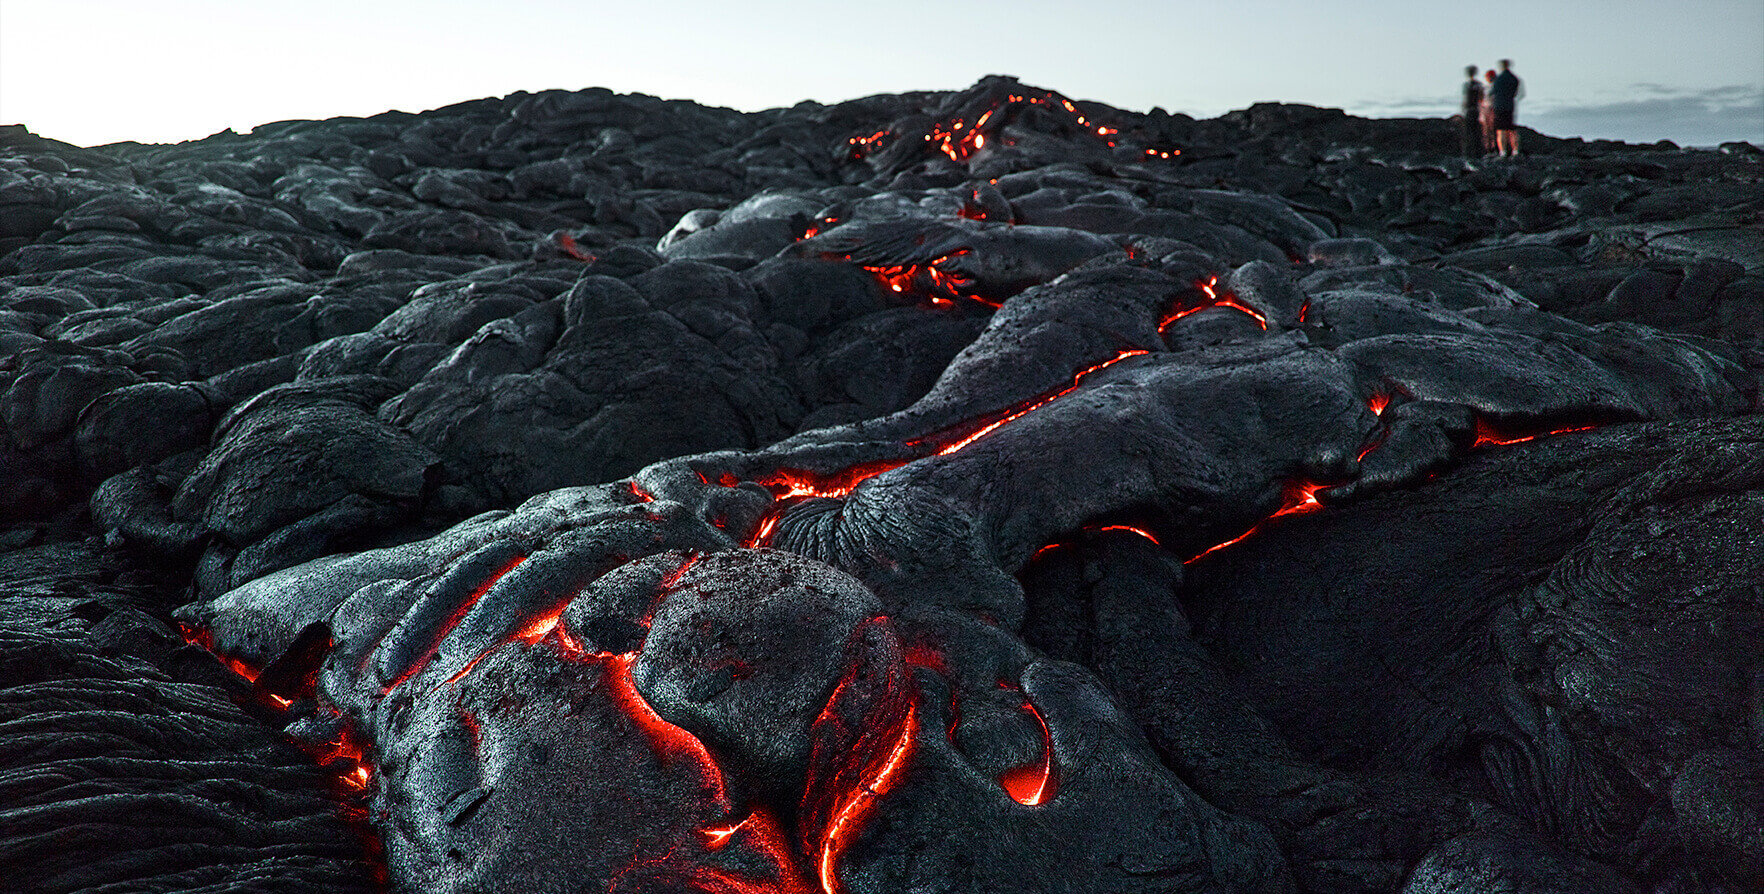 A color photo showing rivers of volcanic magma cooling into black rock with three figures of people standing on the horizon.